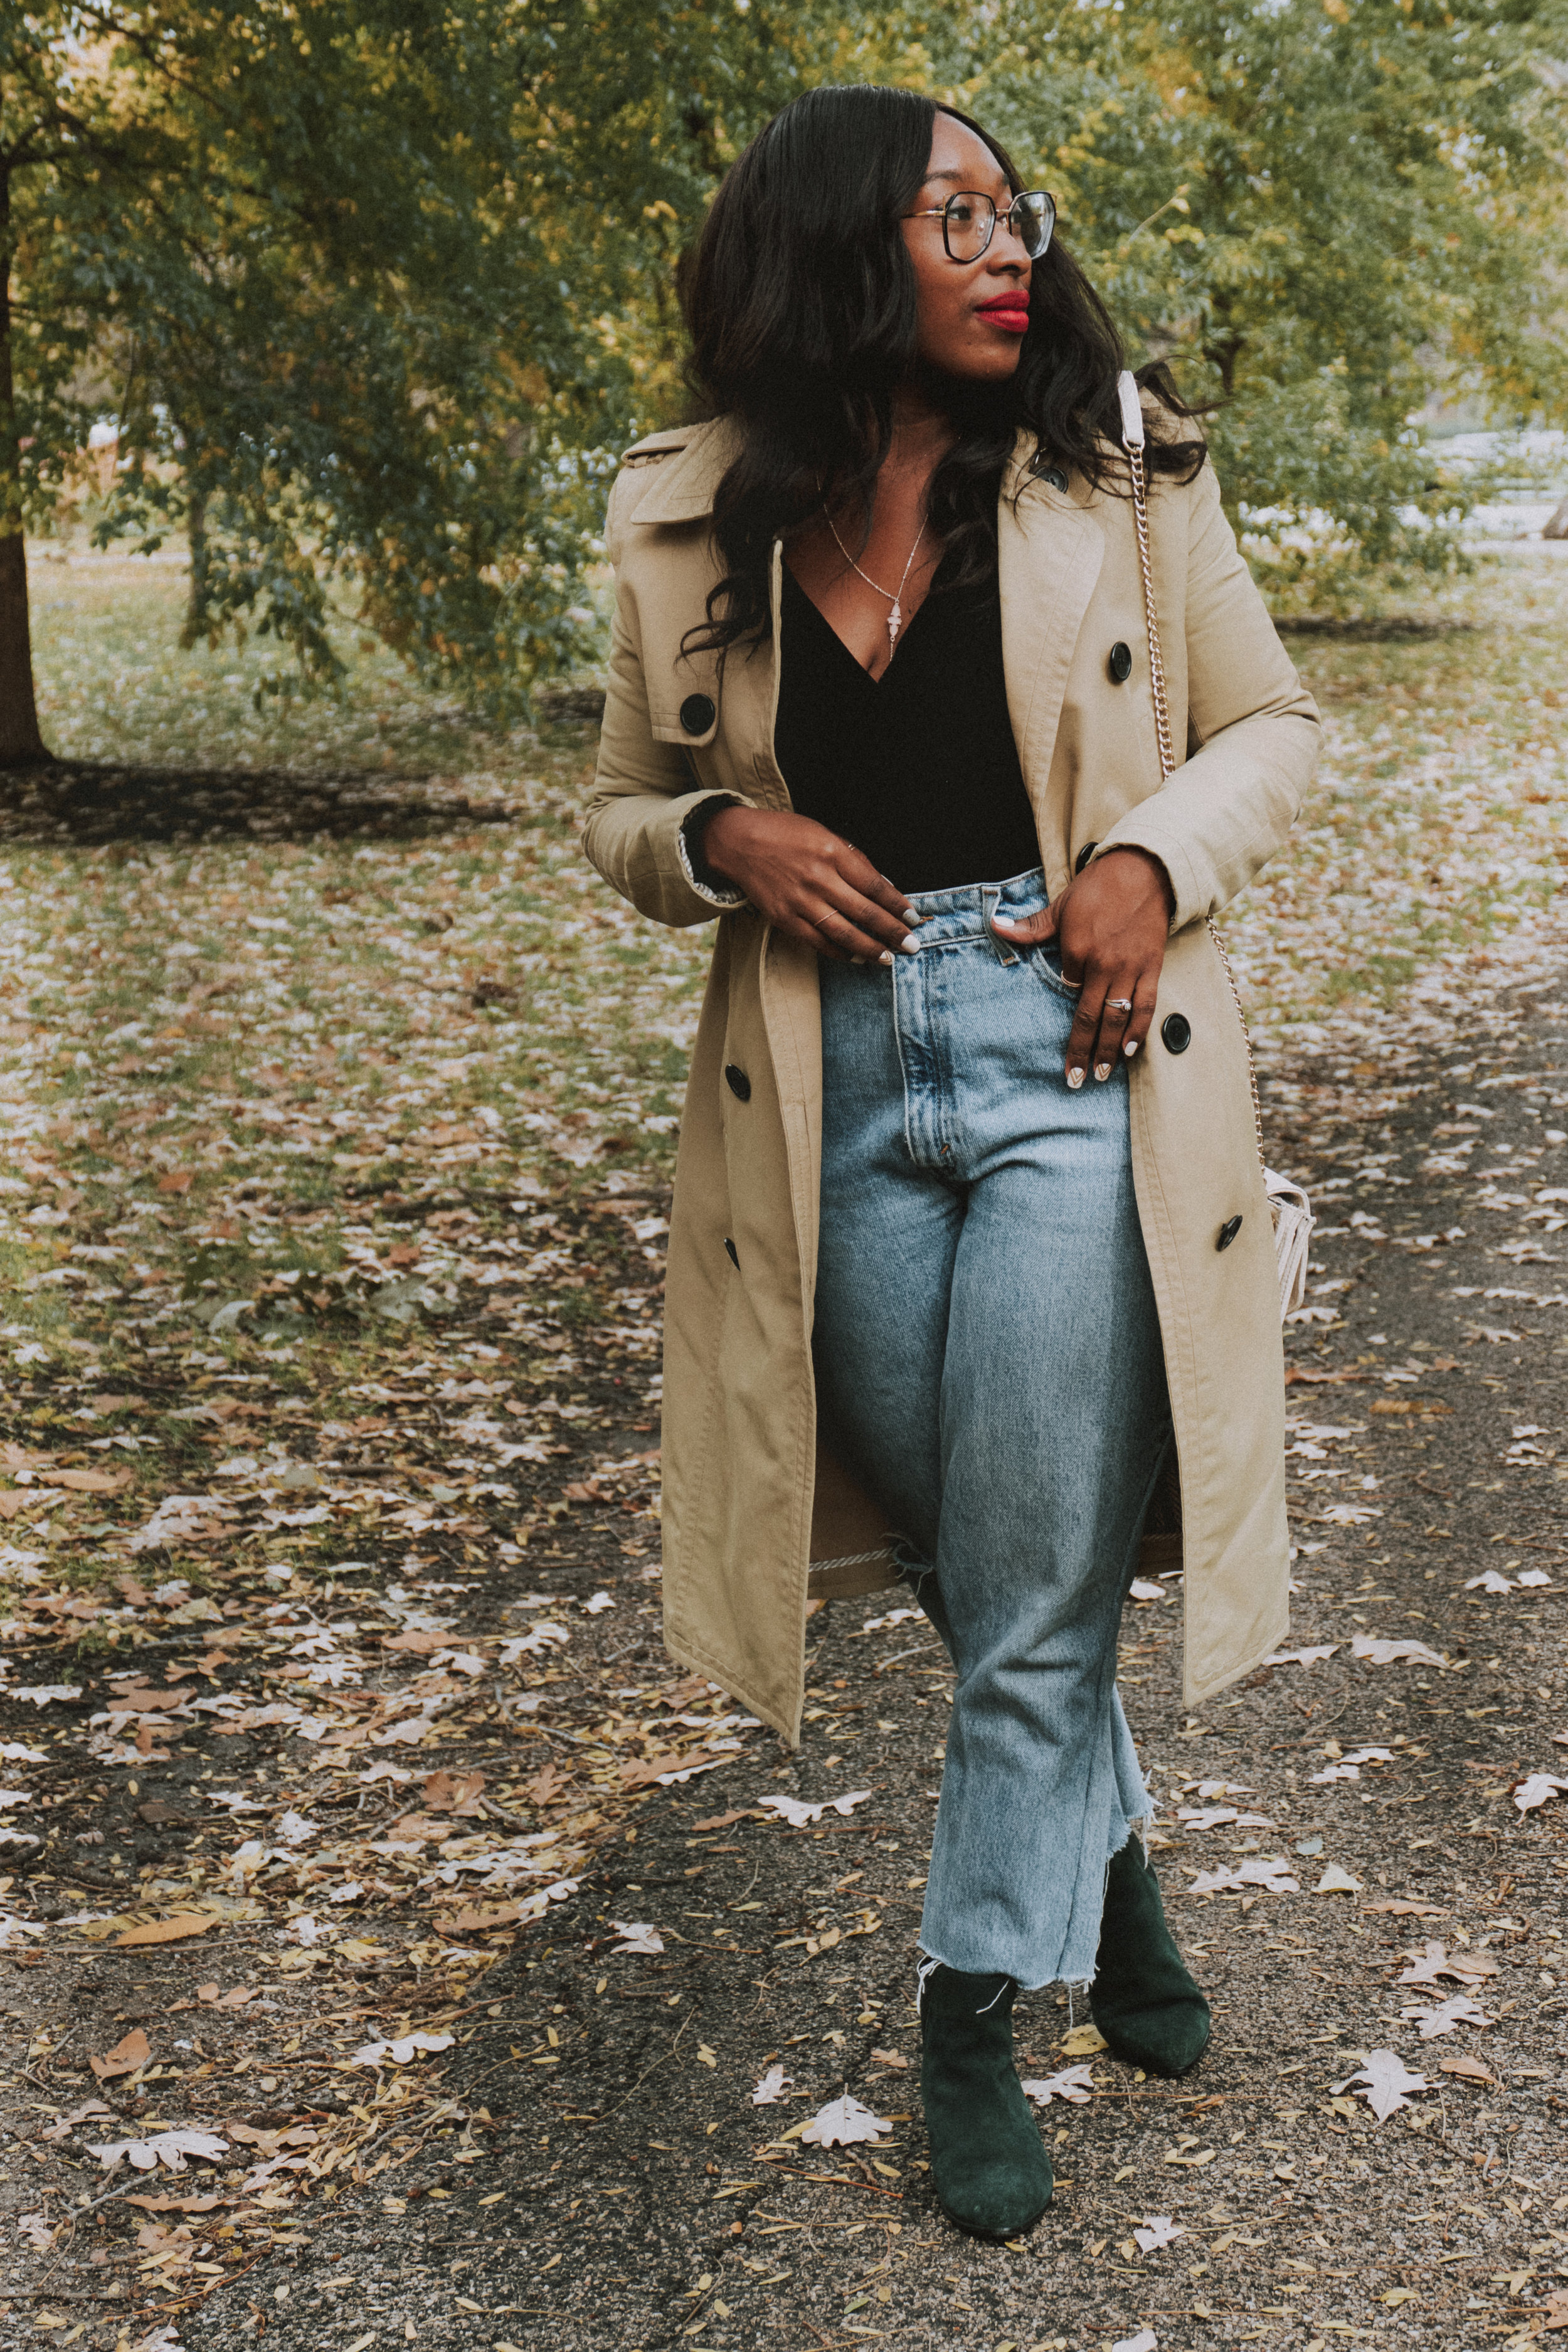 how to style a trench coat, trench coat outfit ideas, mom jeans, how to style mom jeans, how to style a black bodysuit, how to style a bodysuit